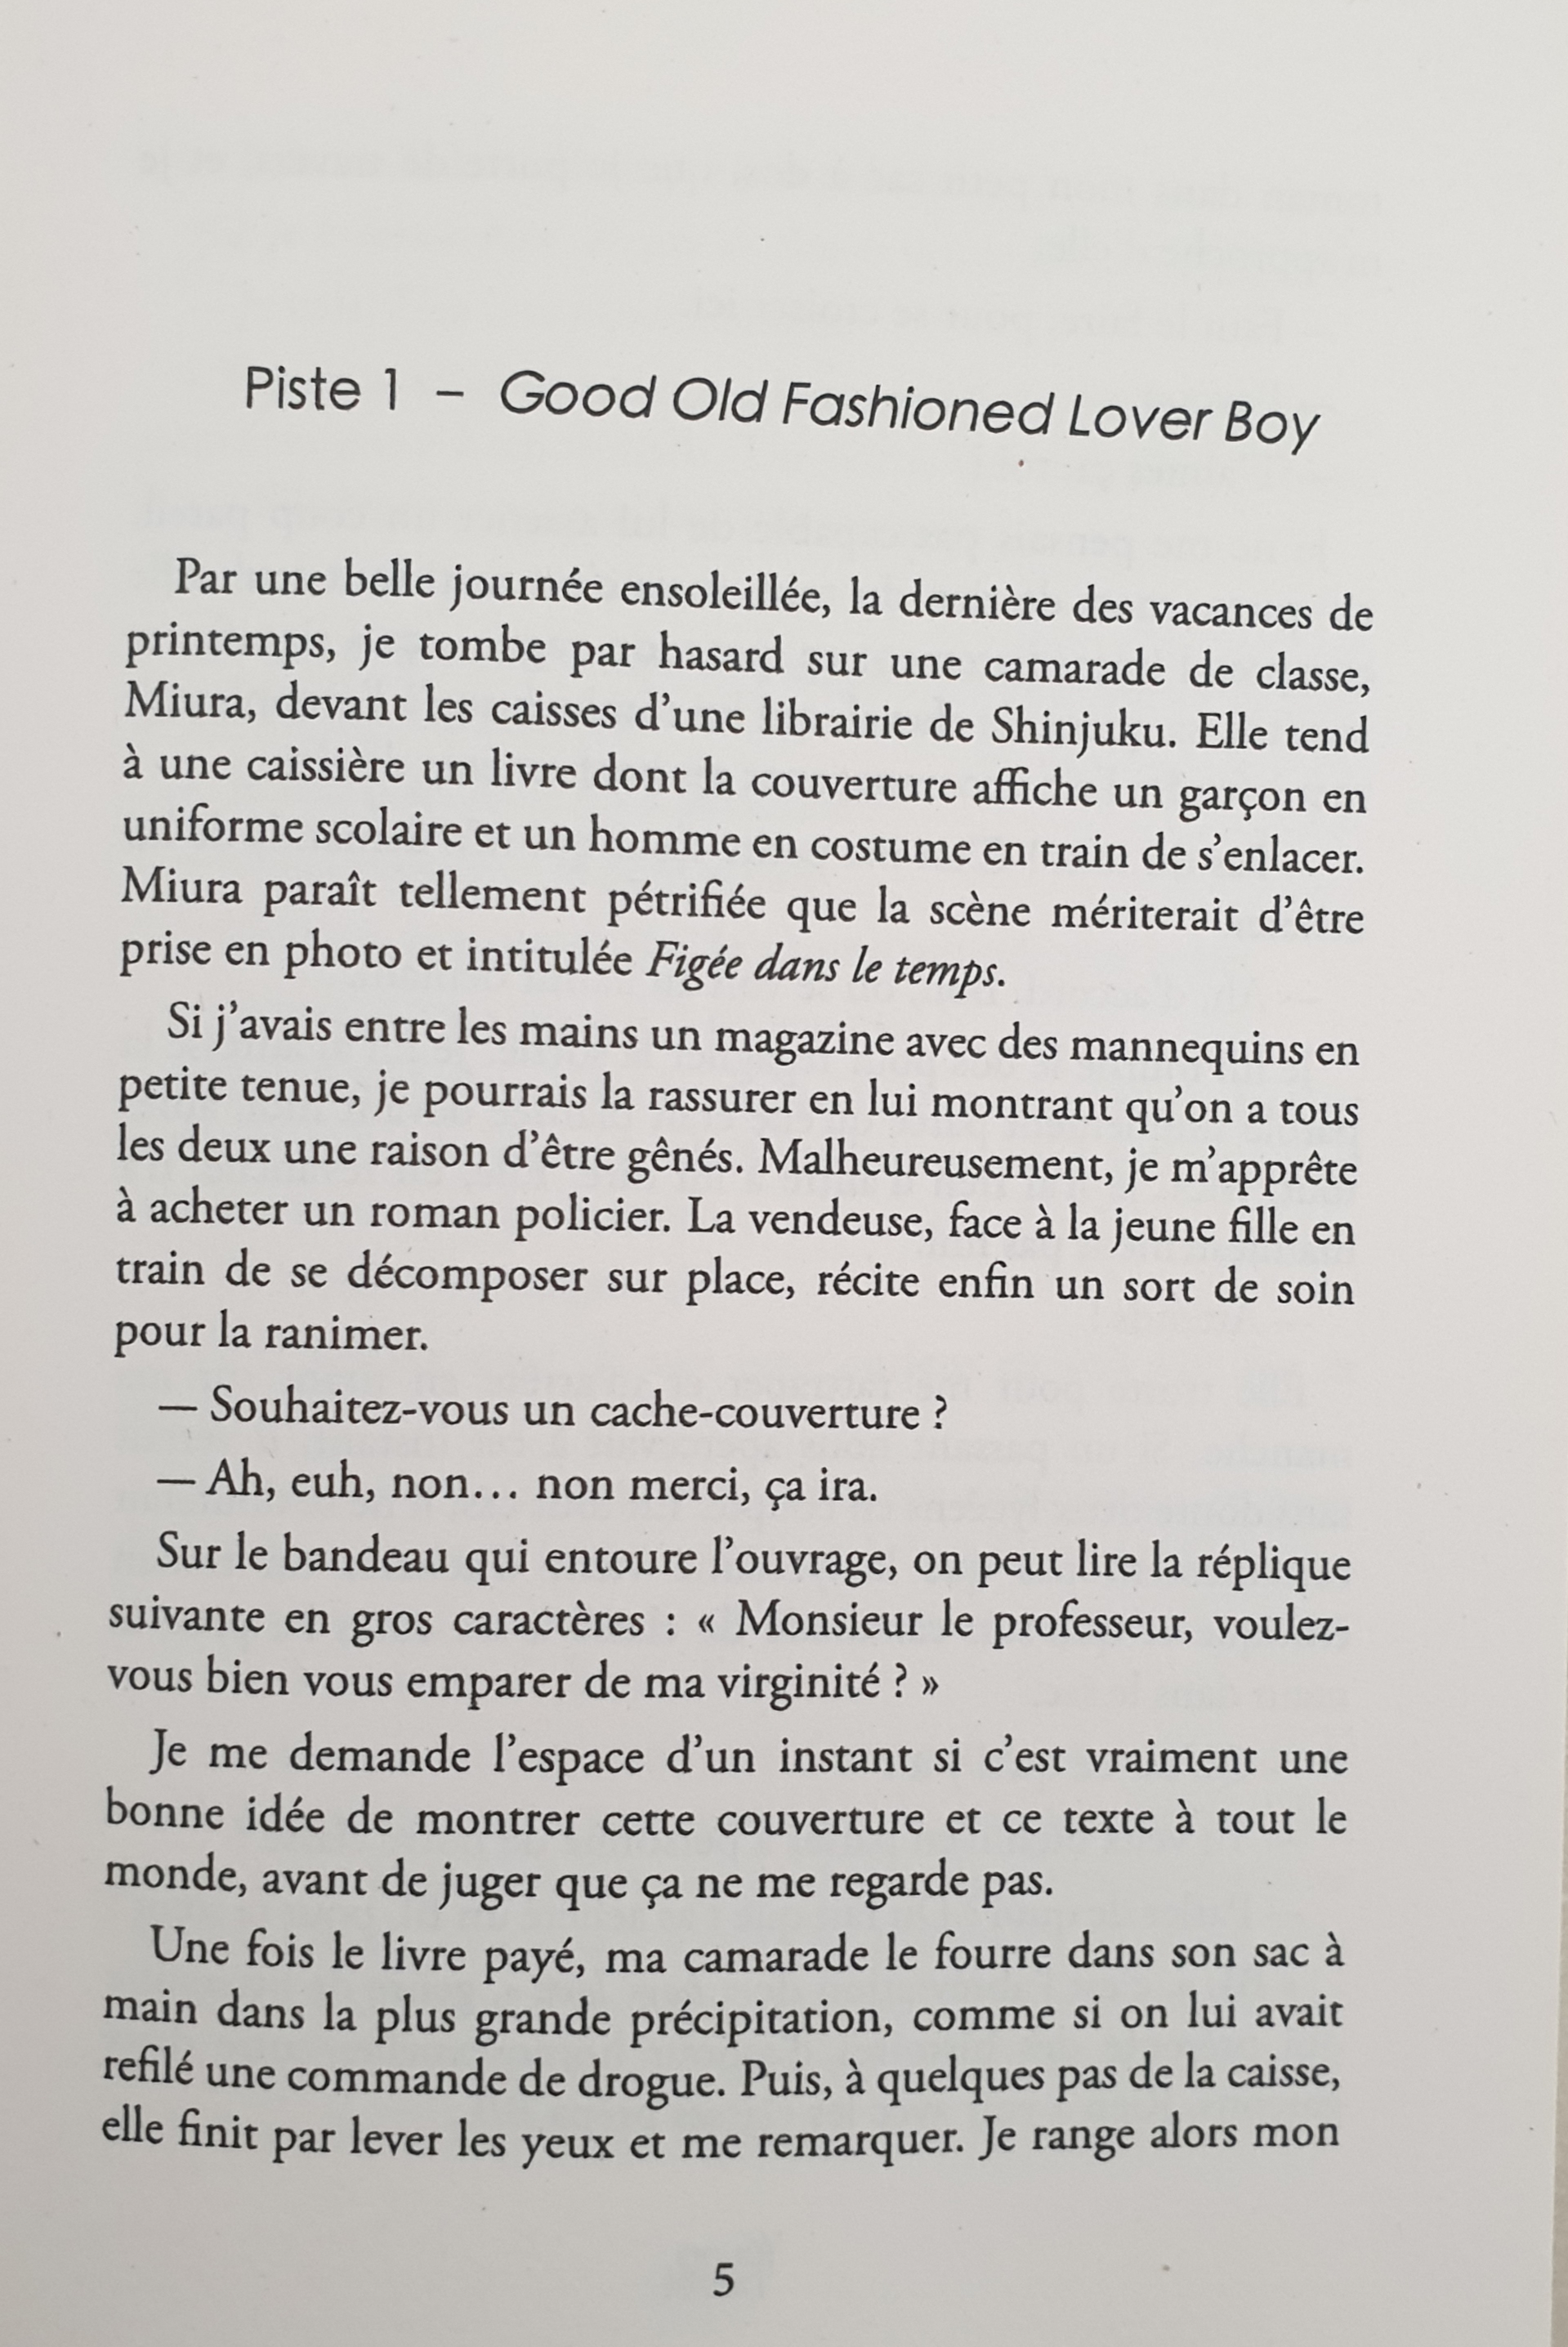 Extrait1-gay-fiction